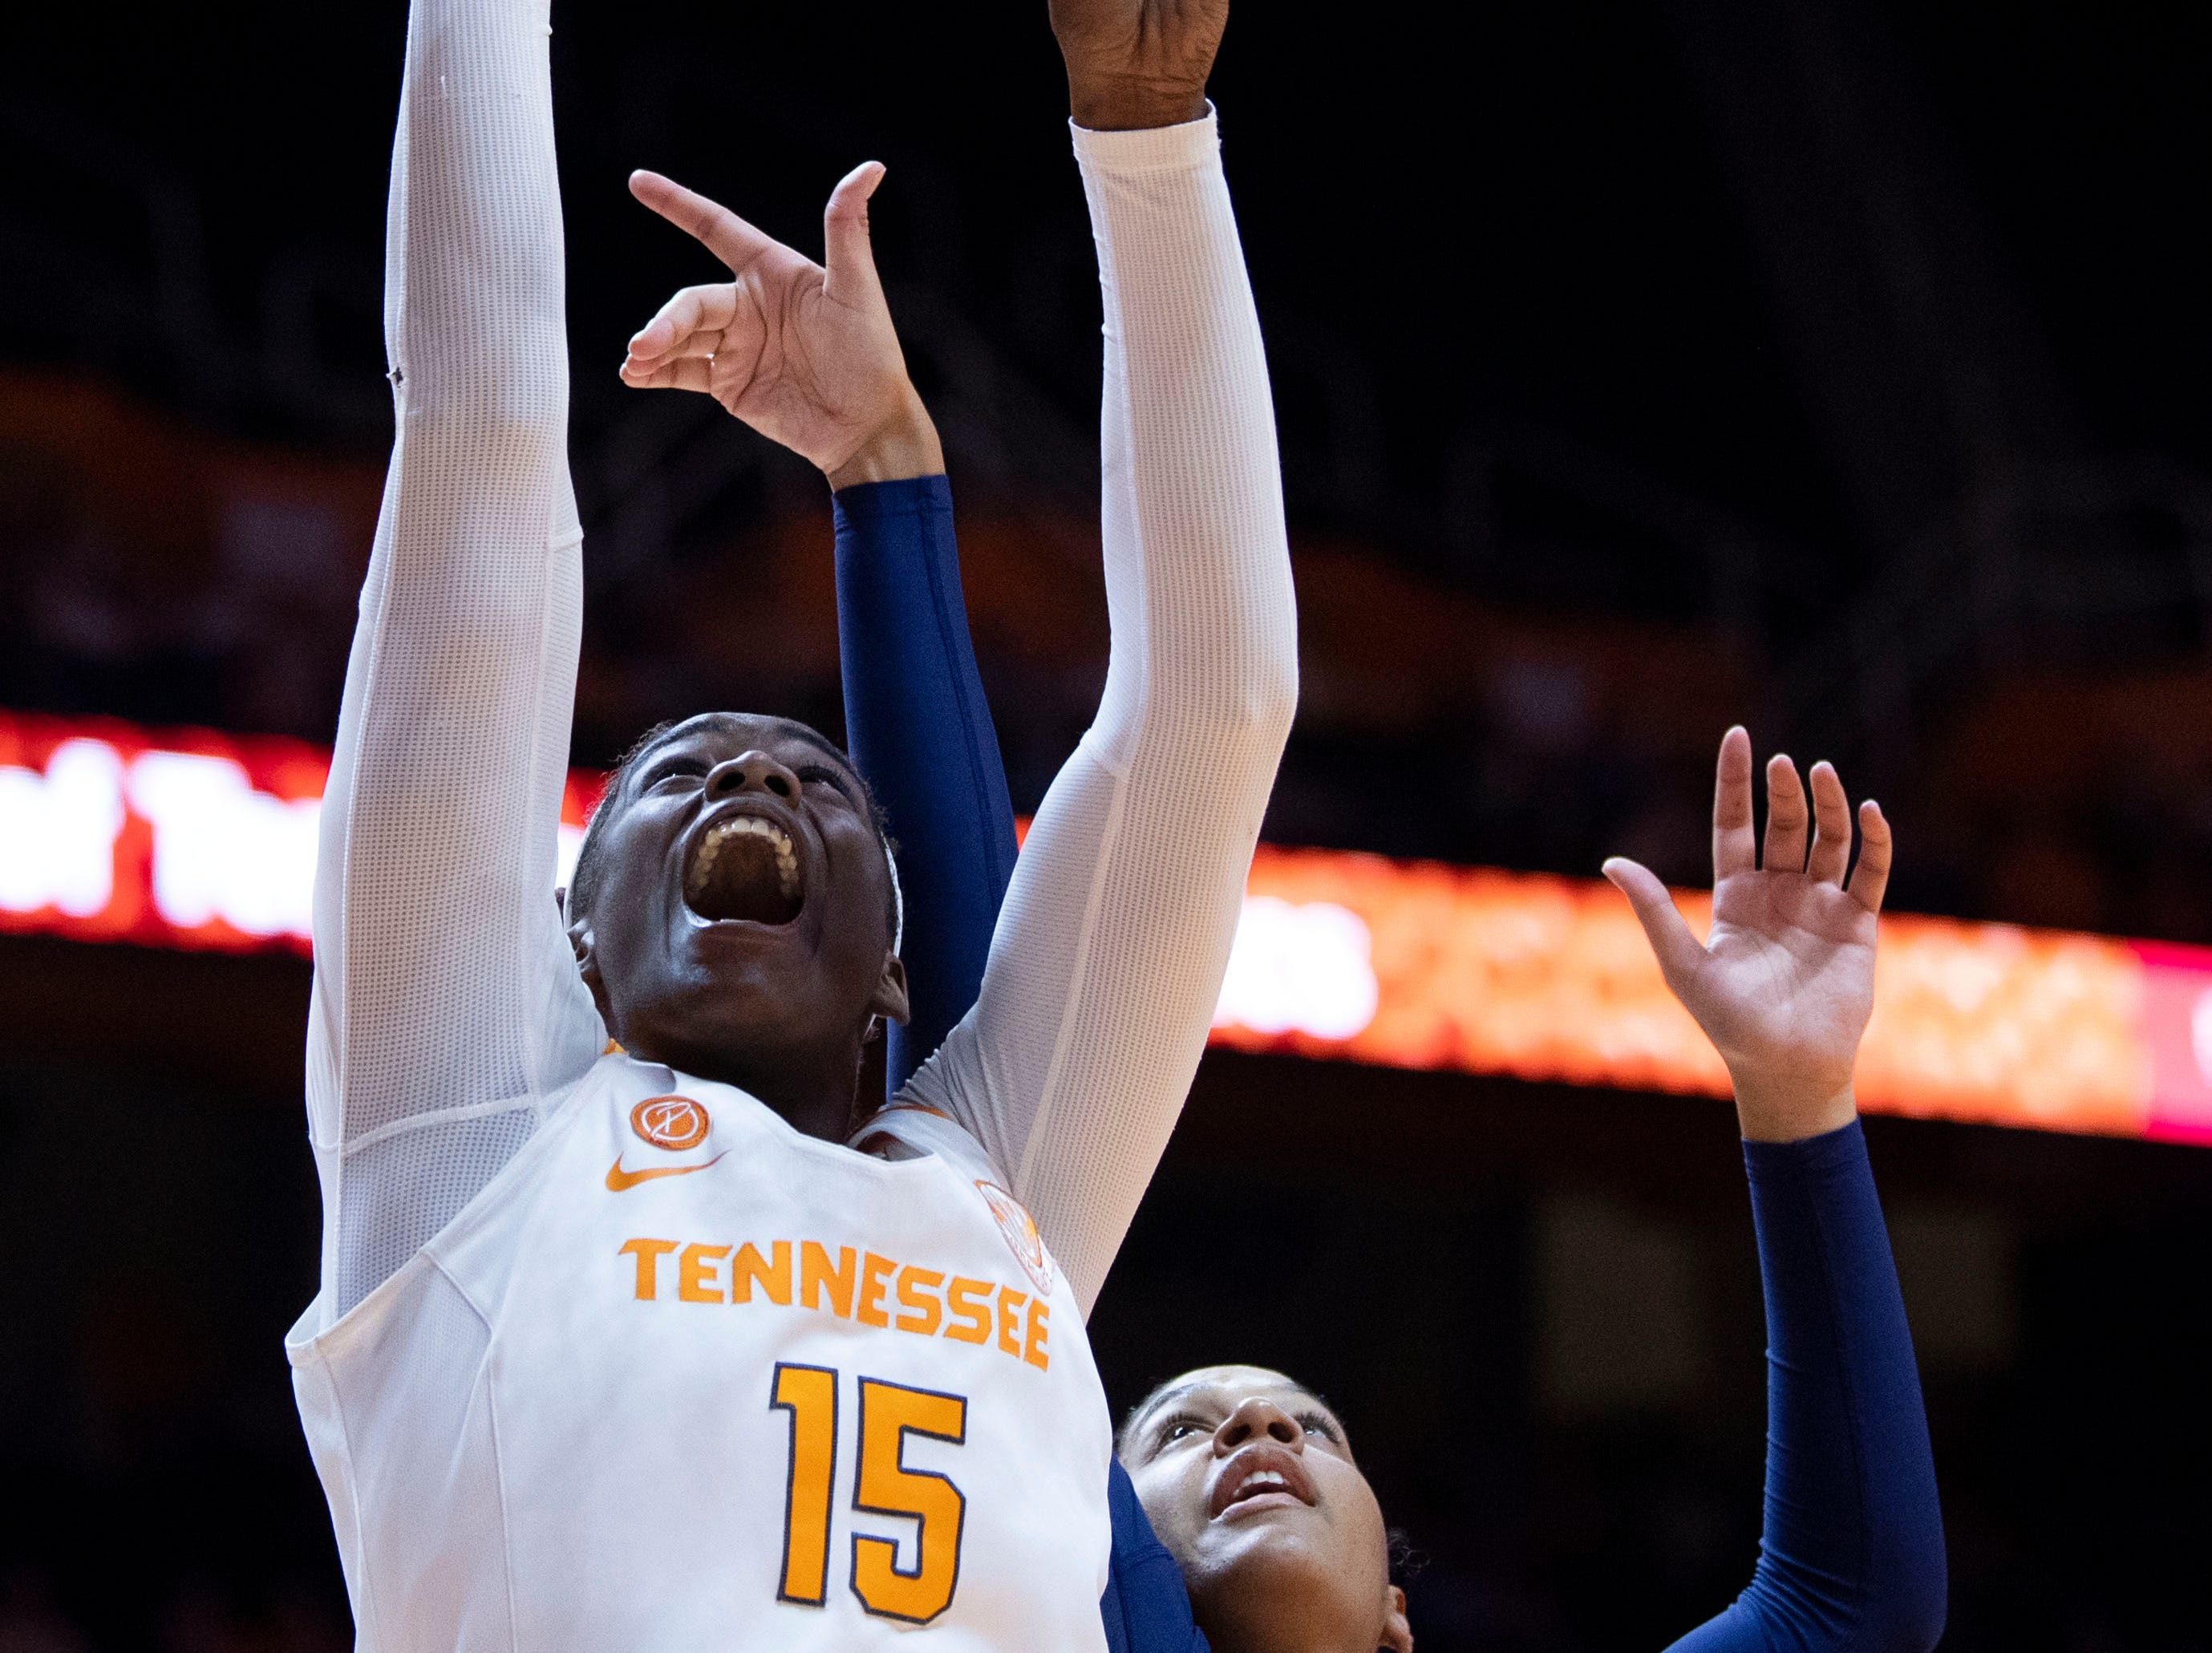 Tennessee's Cheridene Green (15) shoots and scores while guarded by Auburn's Erin Howard (24) on Thursday, February 14, 2019.